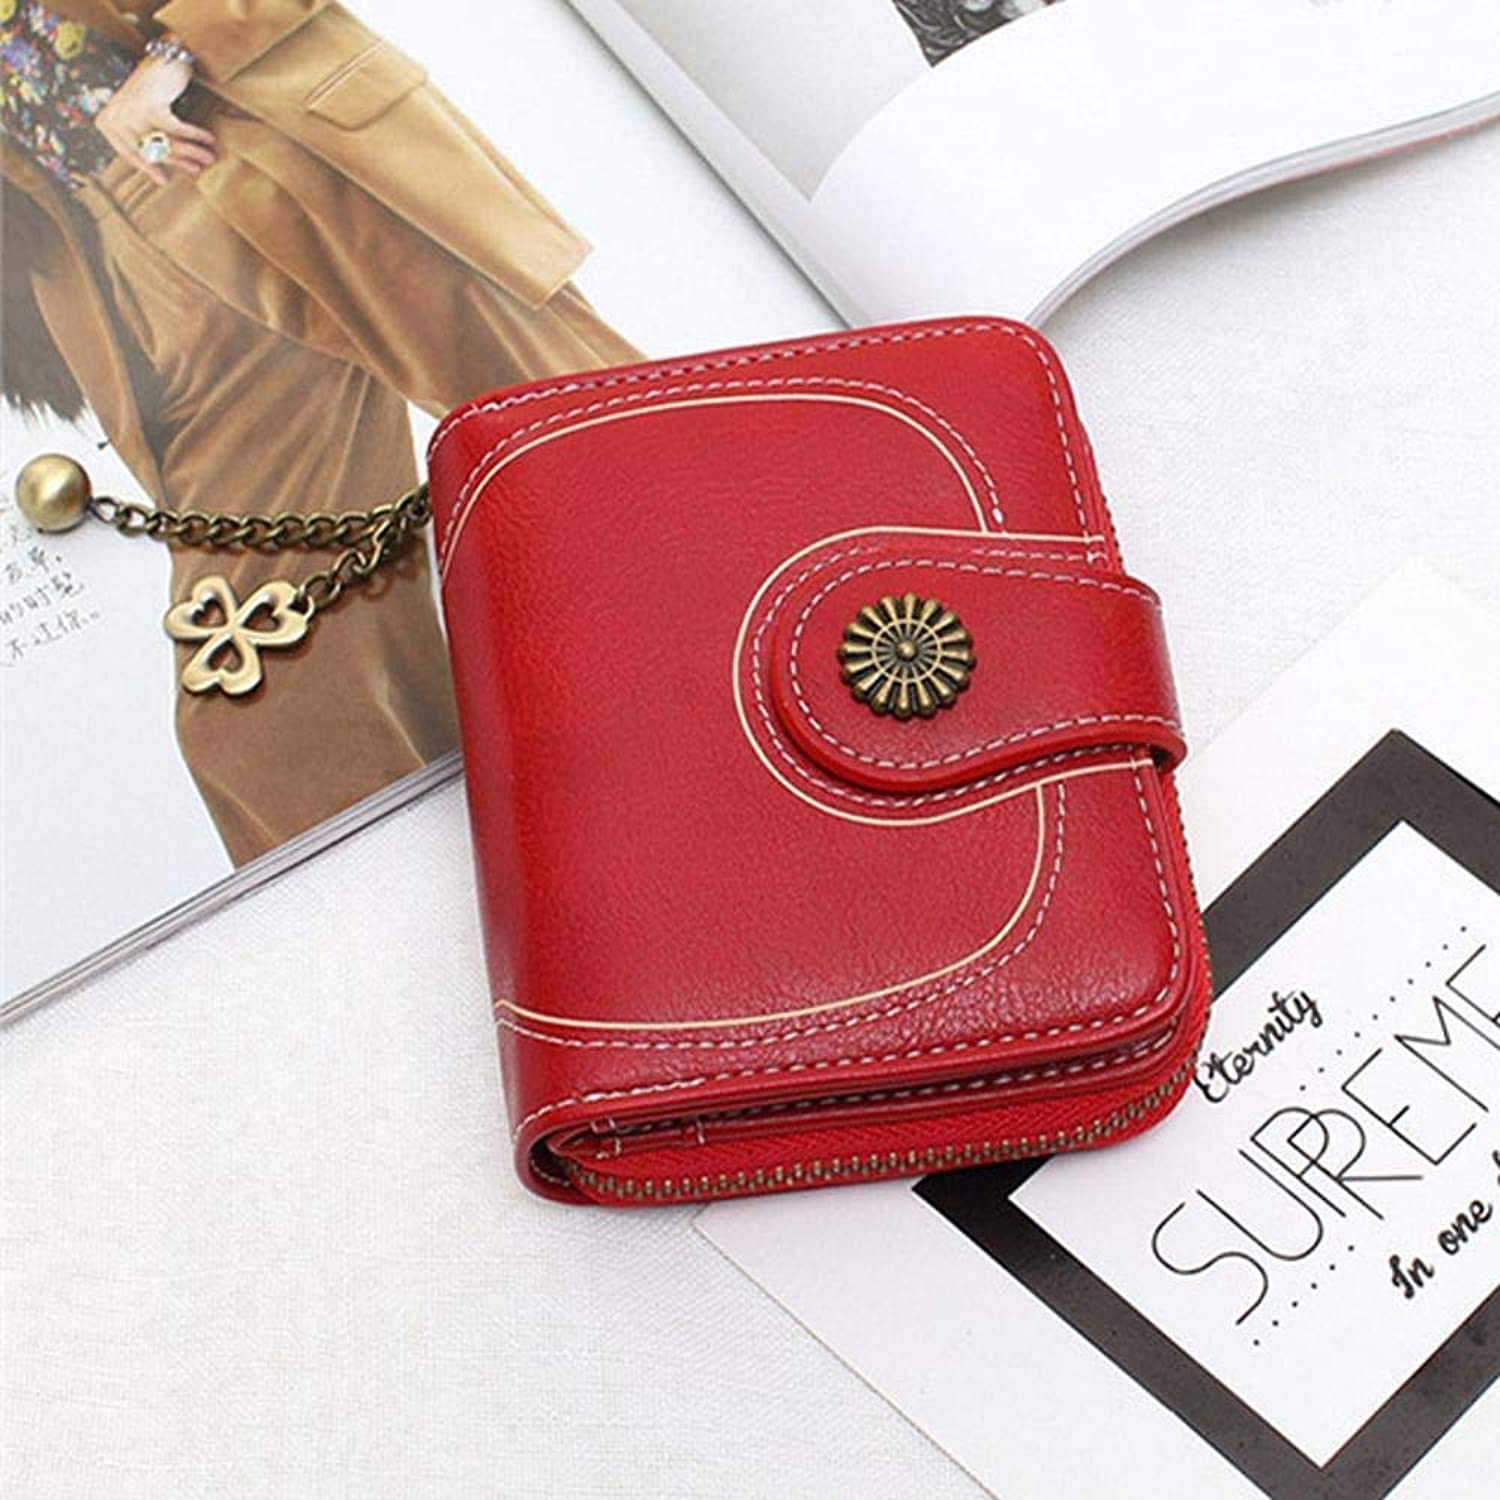 Girls Purse Women's Wallet,Oil Wax Leather Wallet Short 30 Percent Hand Bag Women's Zipper Coin Bag PU Leather (color   B)